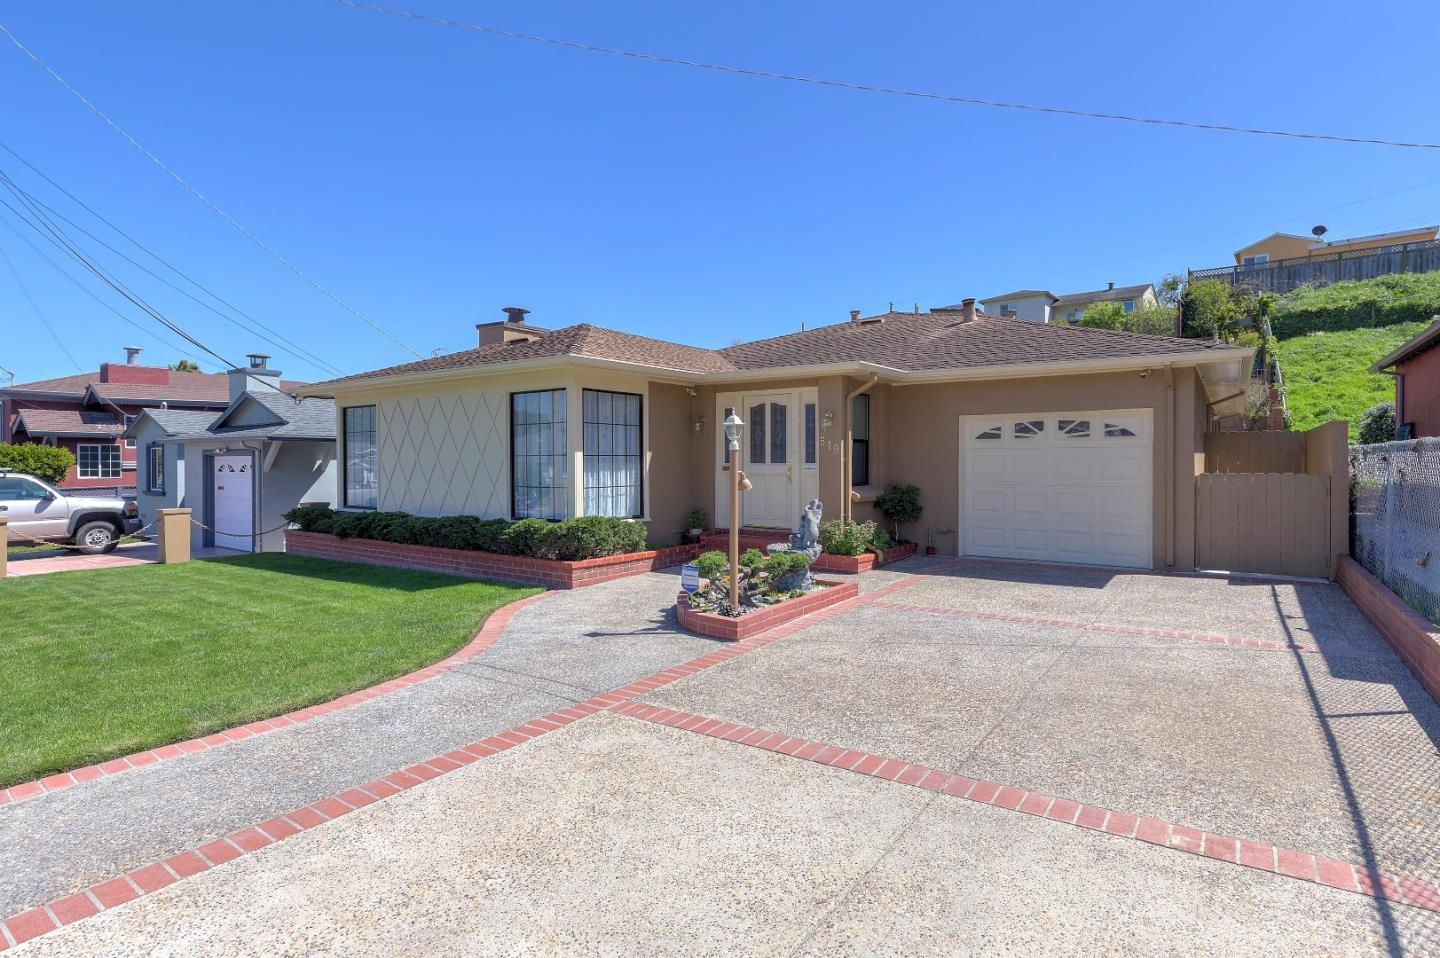 Single Family Home for Sale at 519 Macarthur Drive Daly City, California 94015 United States